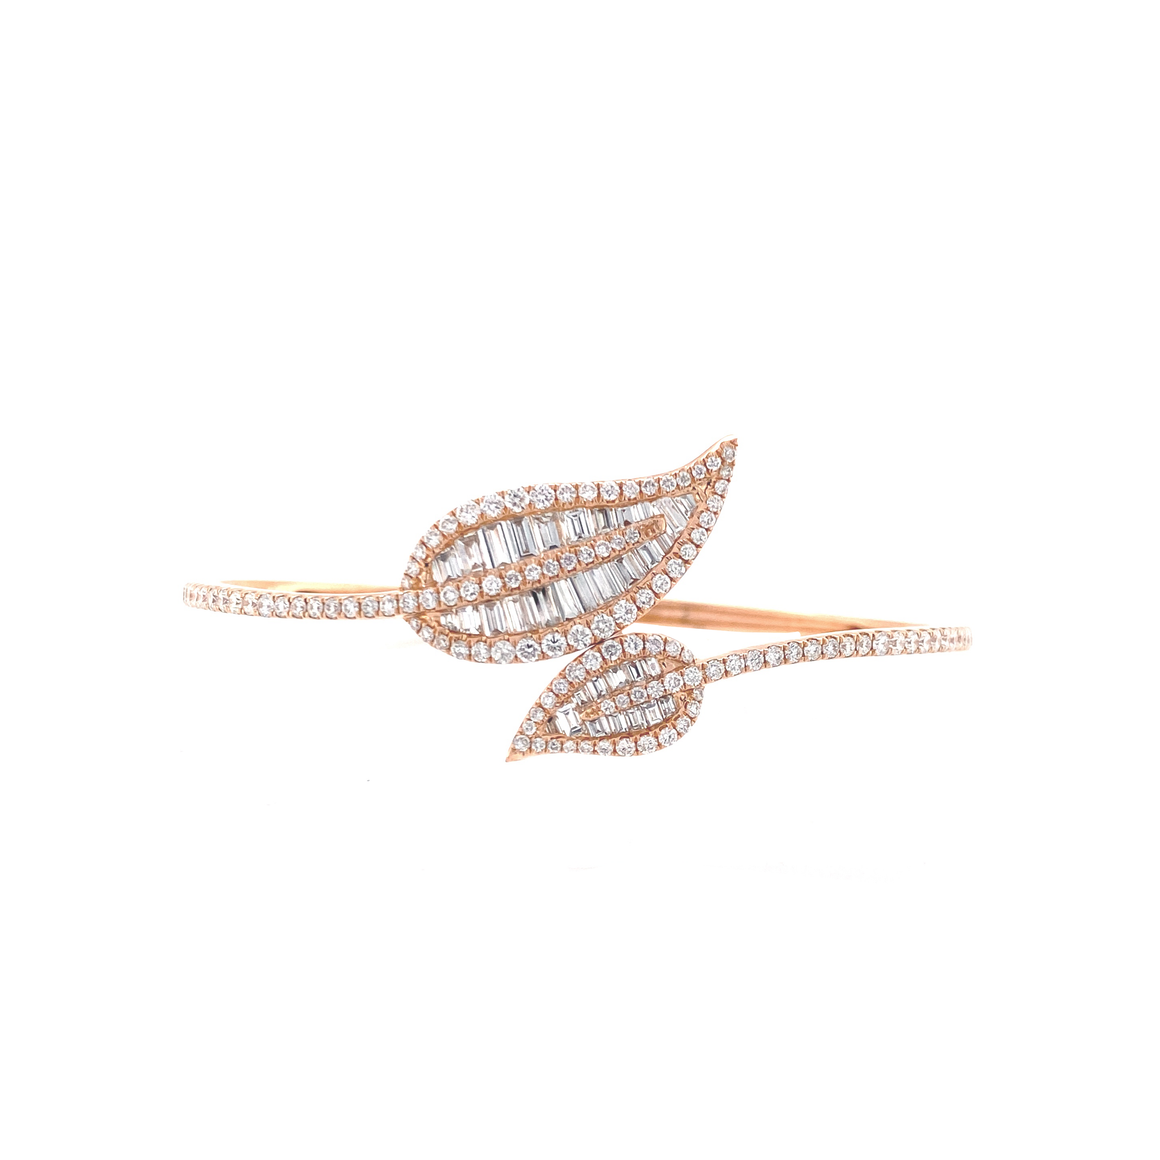 Baguette Diamond Leaf Bangle - Lesley Ann Jewels